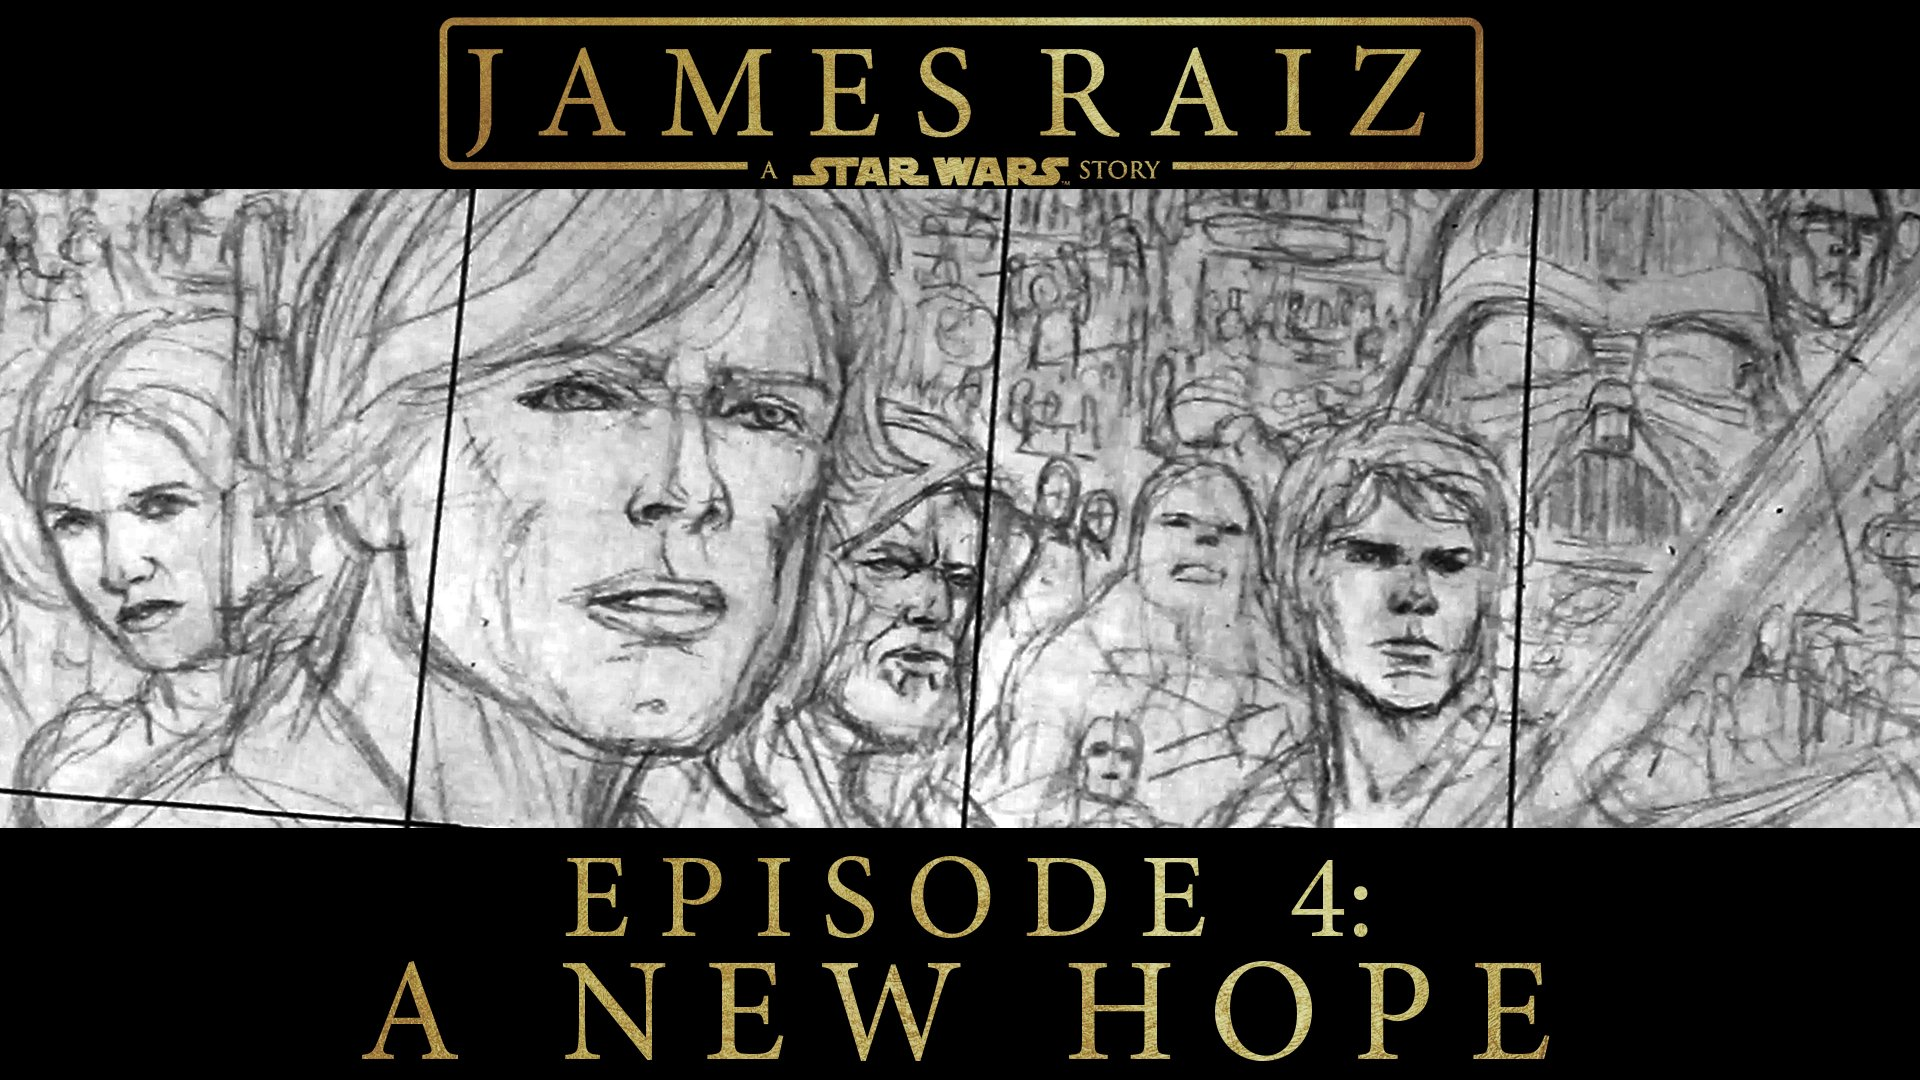 James Raiz On Twitter I Started To Lay Out Pt 1of8 Of My Gigantic Ultimate Starwars Fanart This Is Gonna Take A Year Come And Join Me Https T Co Zvw51sx3jg Https T Co 4covqrtra5